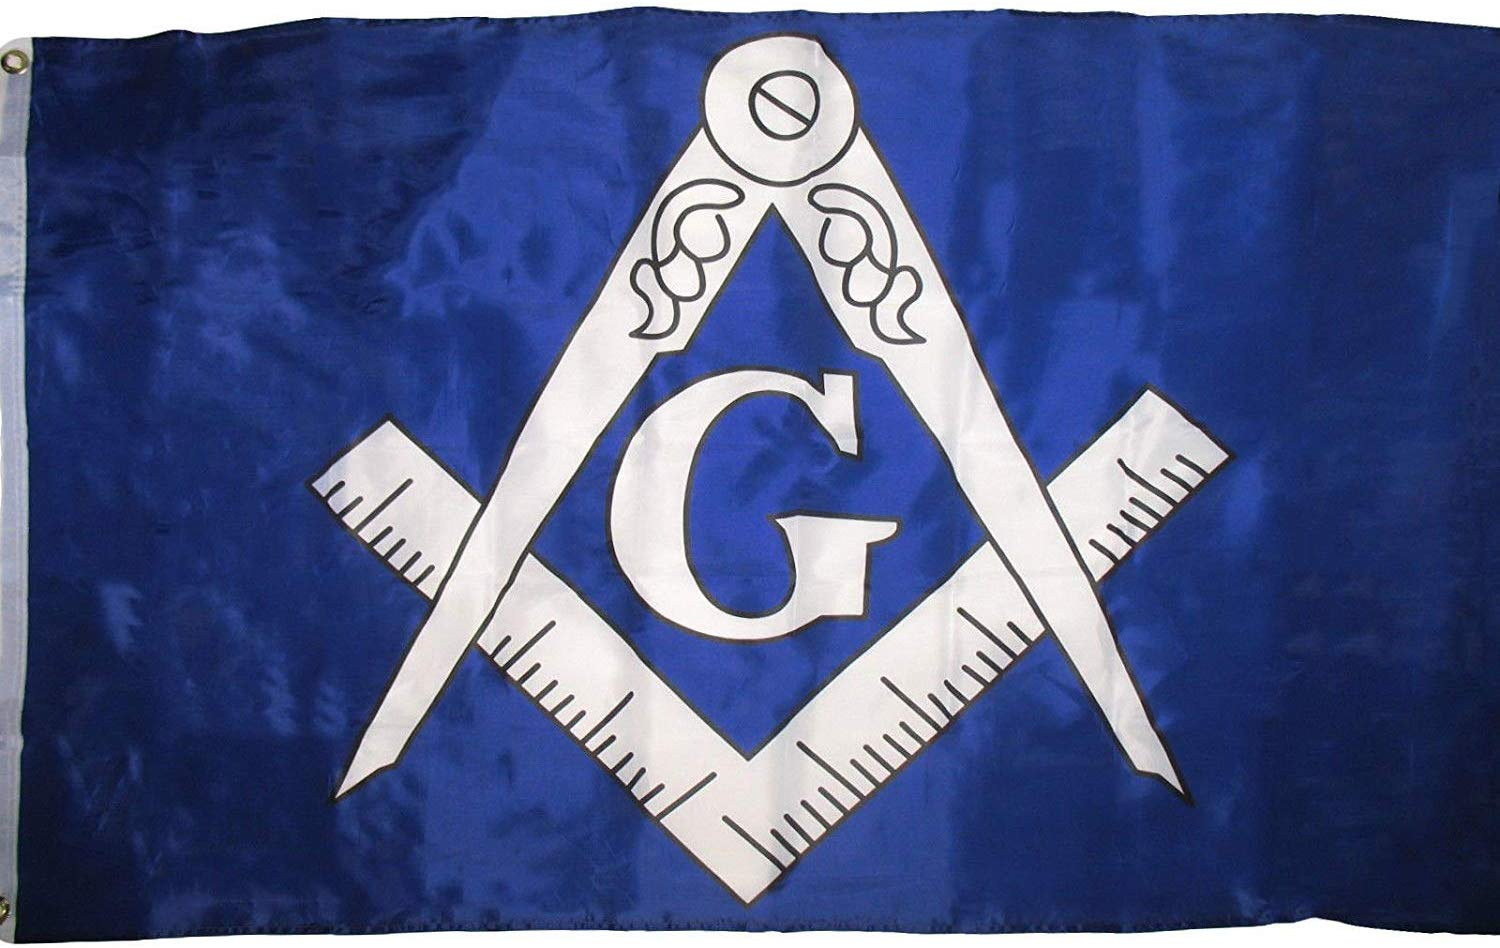 Blue and White Mason Masonic 3x5 Flag - SolomonsOrder